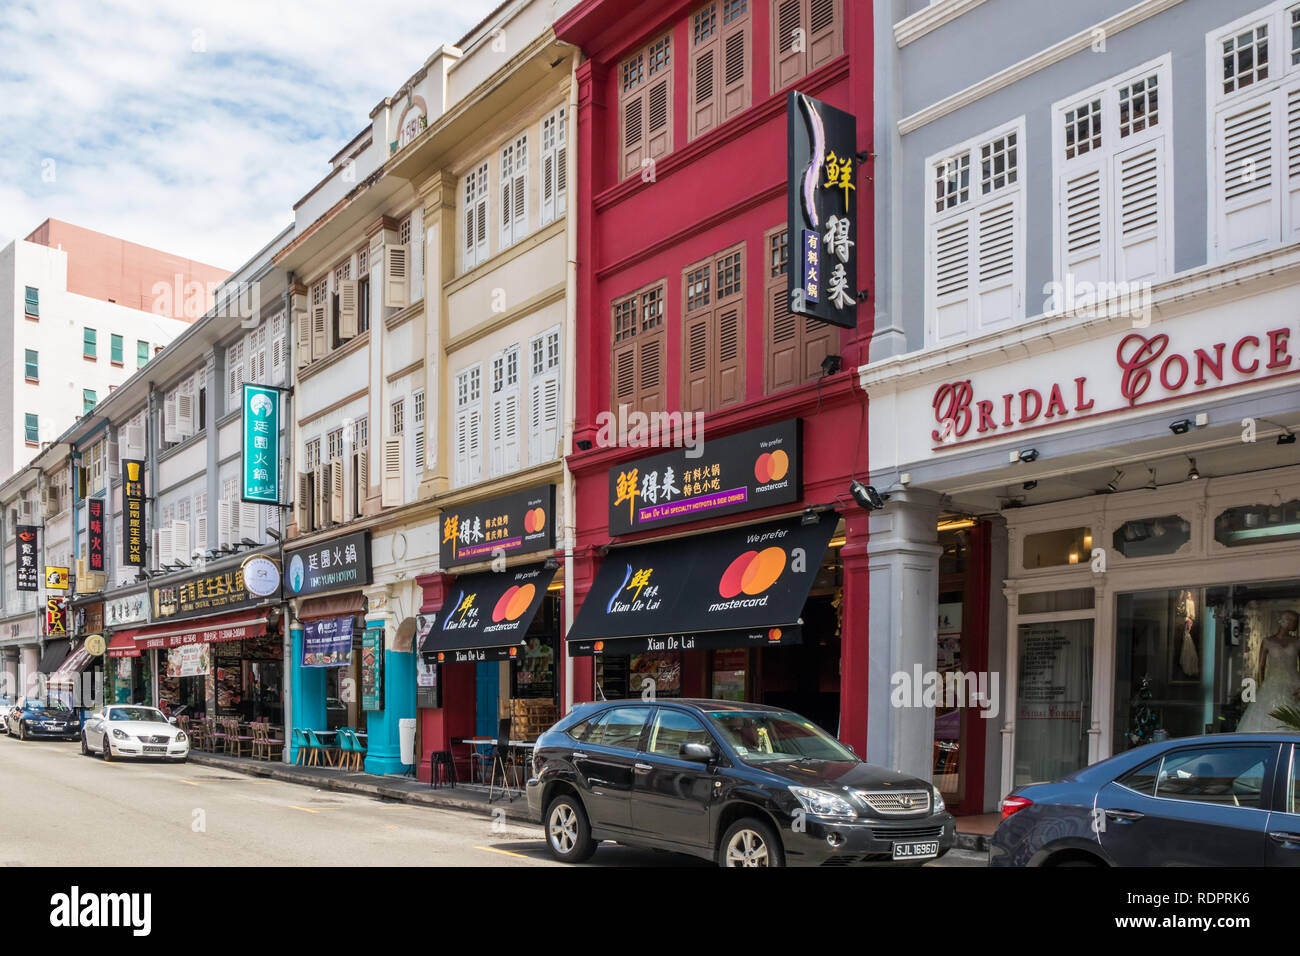 Singapore - 26th December 2018: Typical shophouses on Liang Seah Street. The street is in the Bugis area. - Stock Image